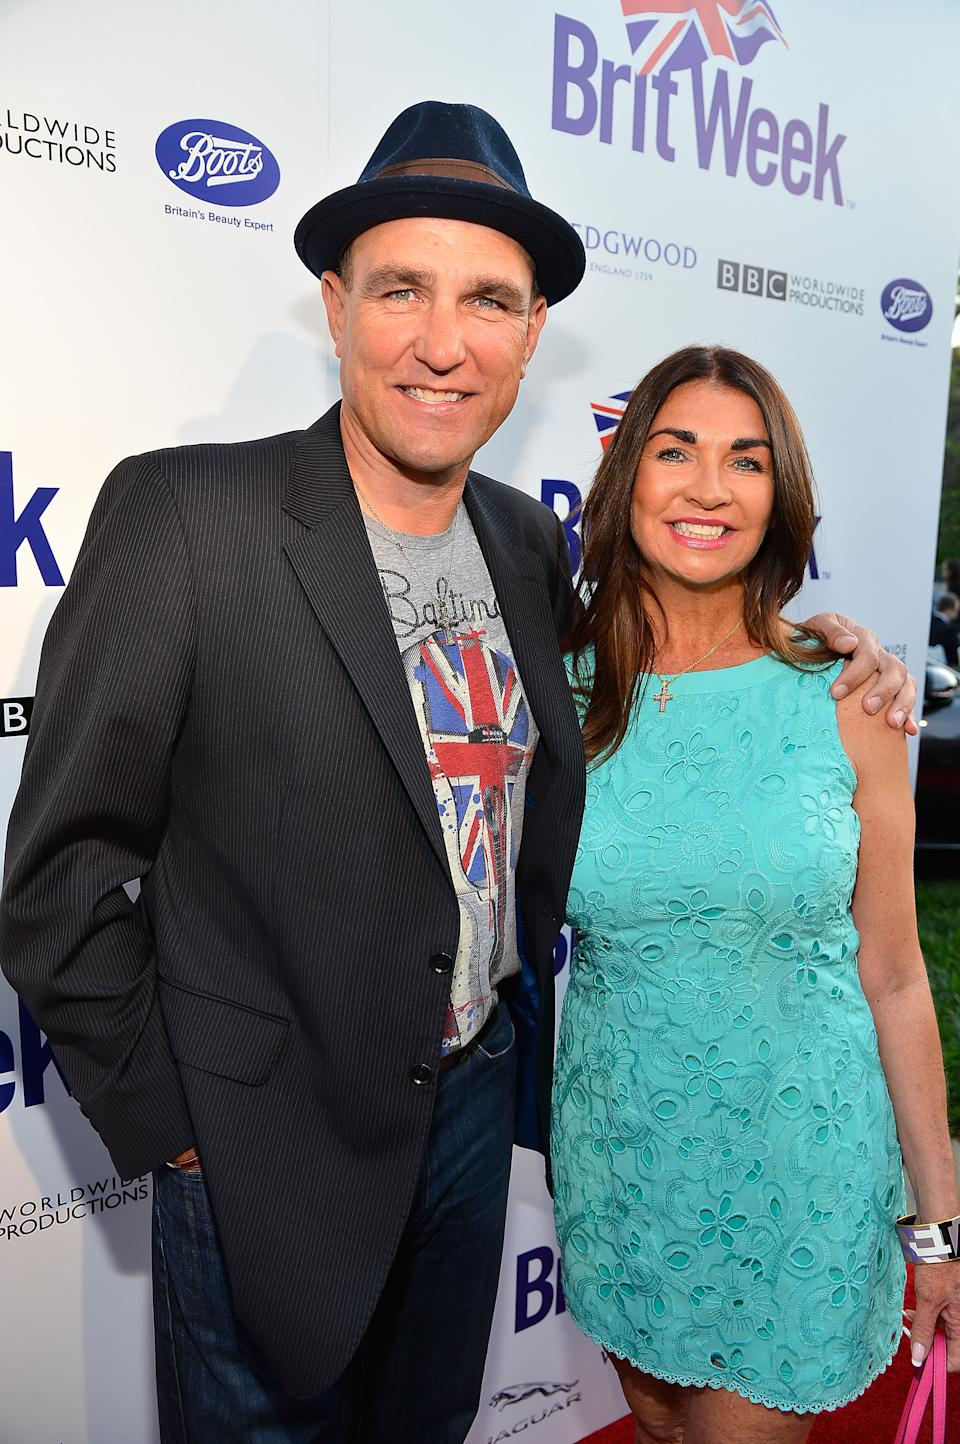 Vinnie Jones (L) and Tanya Jones attend the launch of the Seventh Annual BritWeek Festival